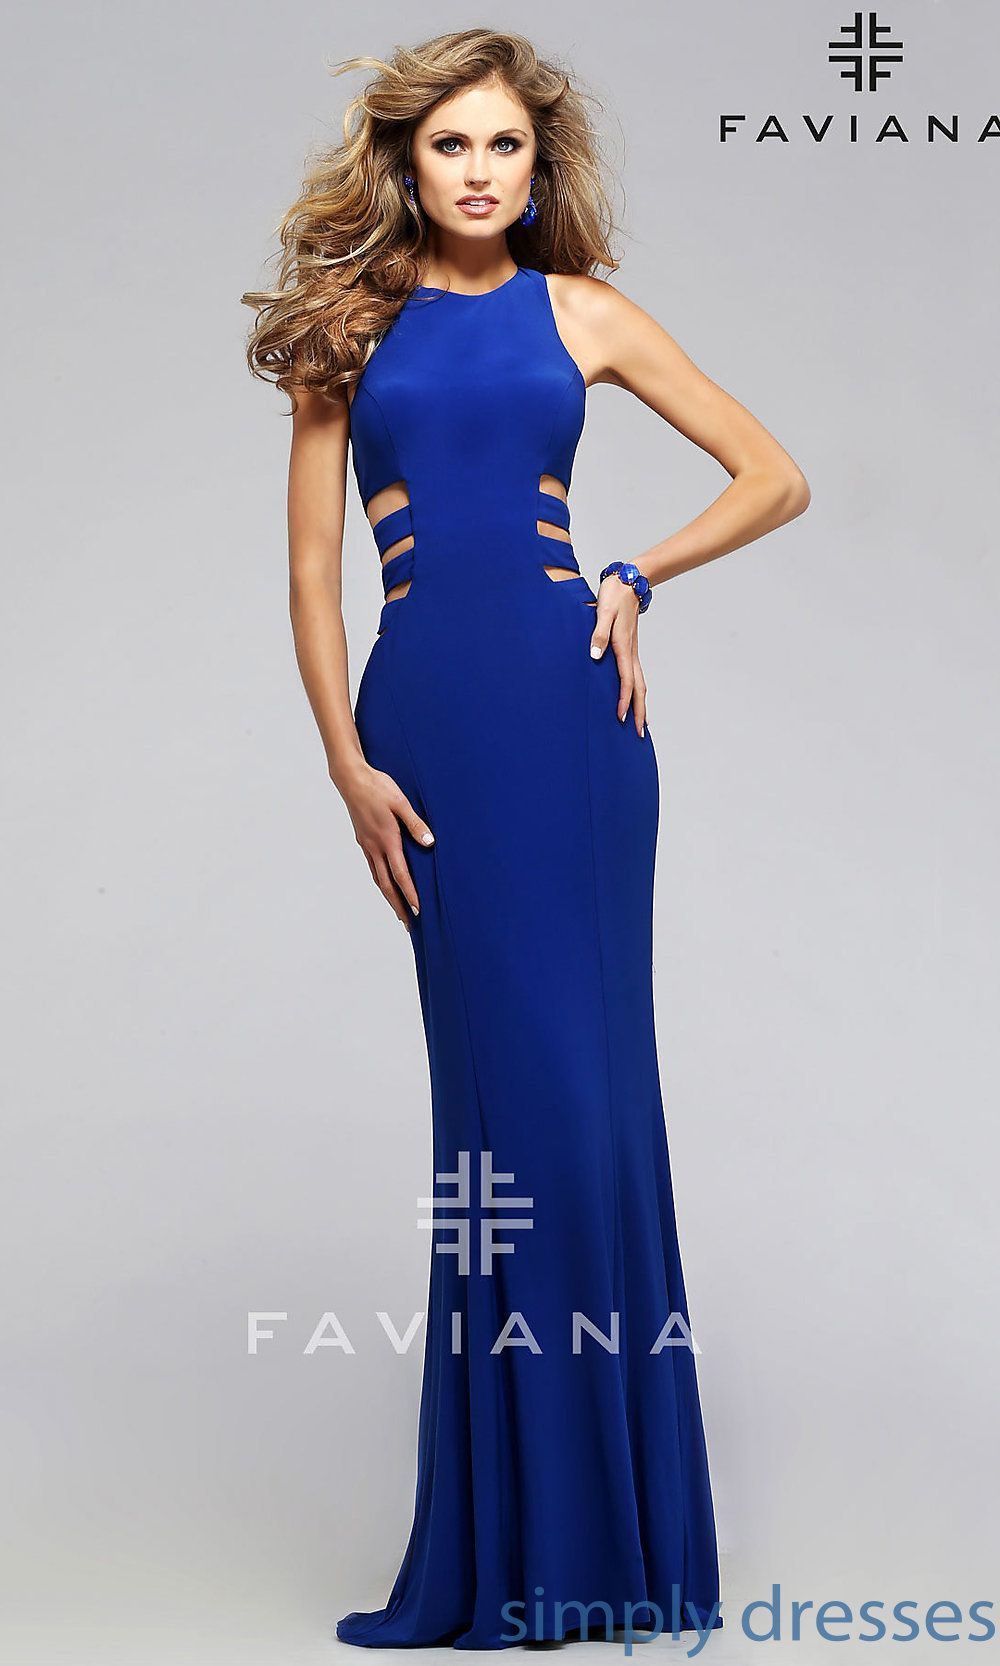 80e5f2e7d412 Shop floor length side cut out gowns by Faviana at SimplyDresses. Long  dresses with high necks and T-backs for special occasions or formals.